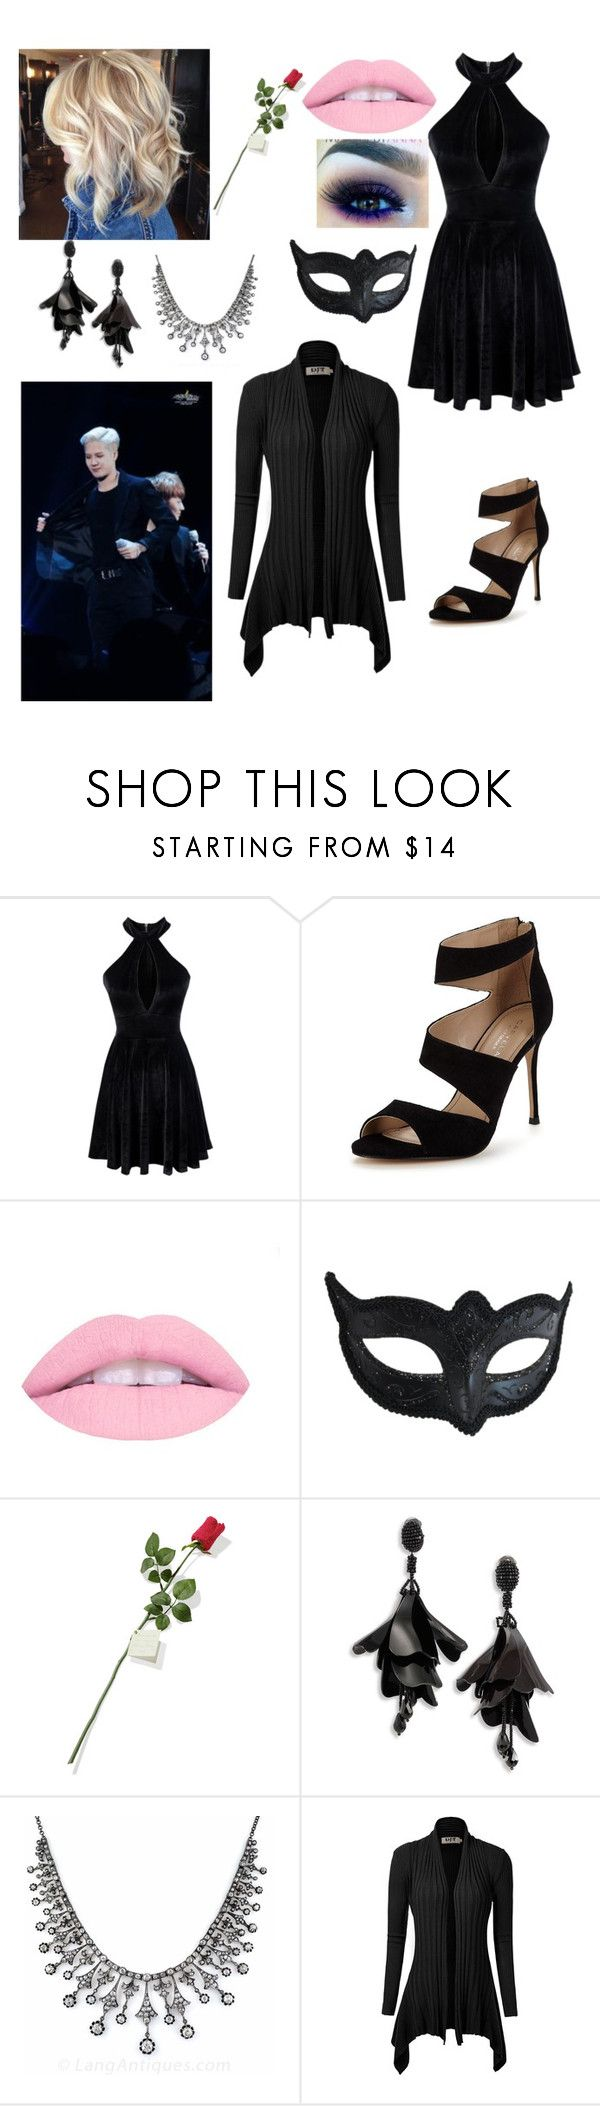 """prom with Jackson"" by btsgirl1234 ❤ liked on Polyvore featuring Carvela, Masquerade, Hanky Panky and Oscar de la Renta"